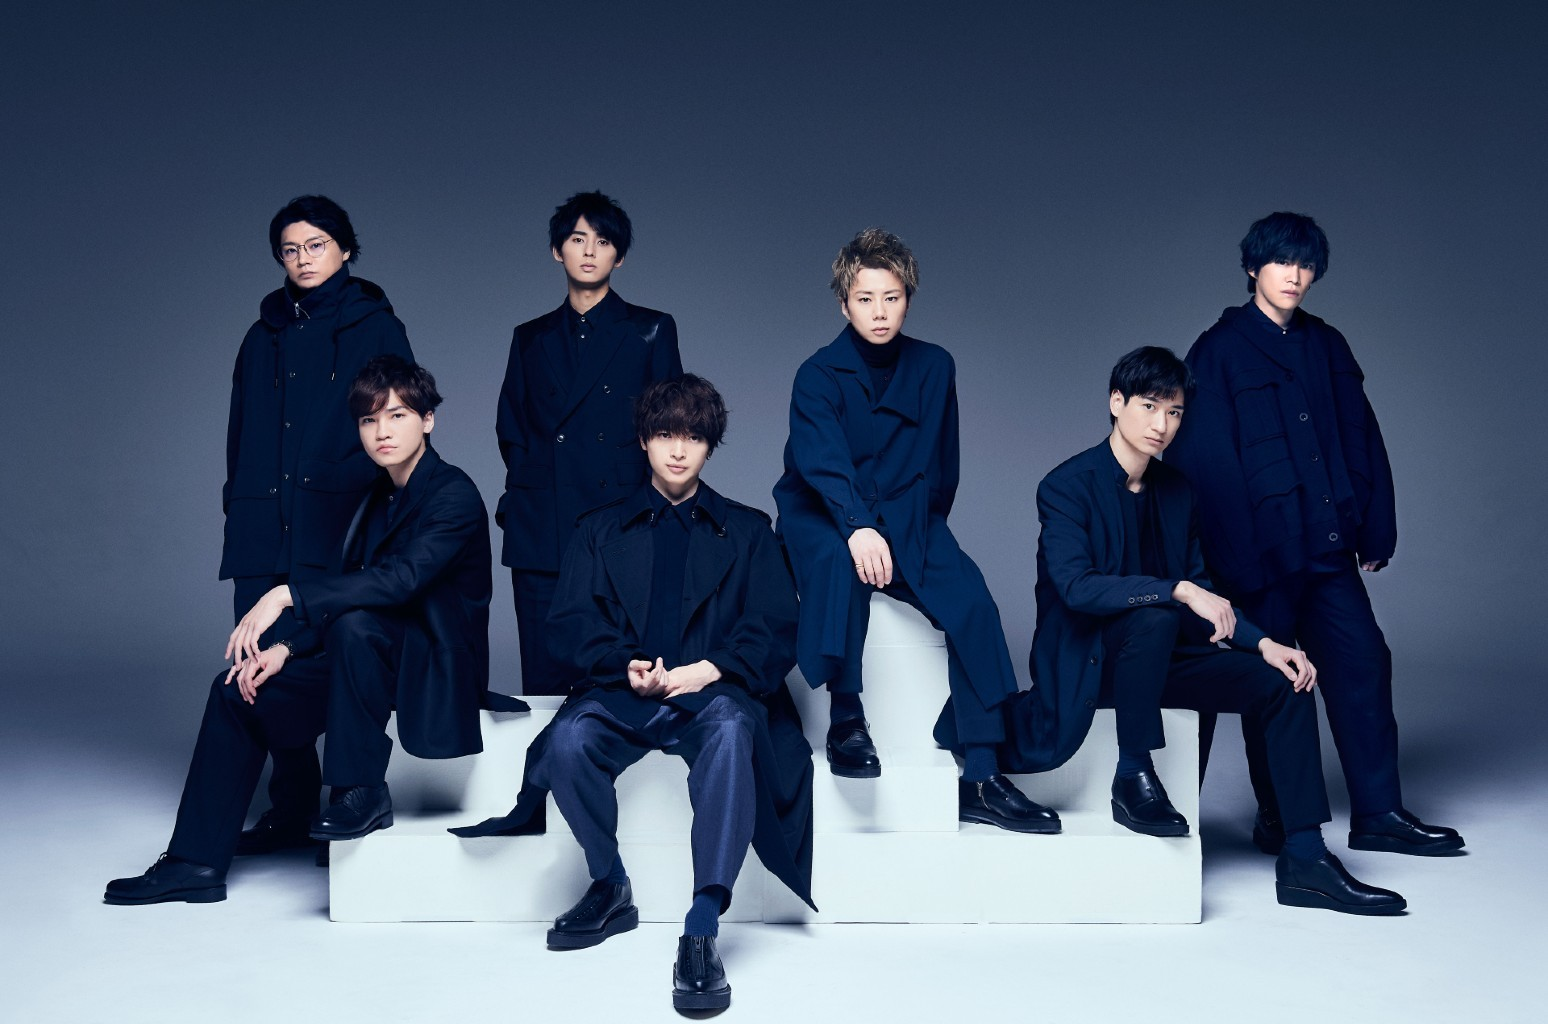 Kis-My-Ft2 Debuts at No. 1, Official HIGE DANdism Rises to No. 4 on Japan Hot 100